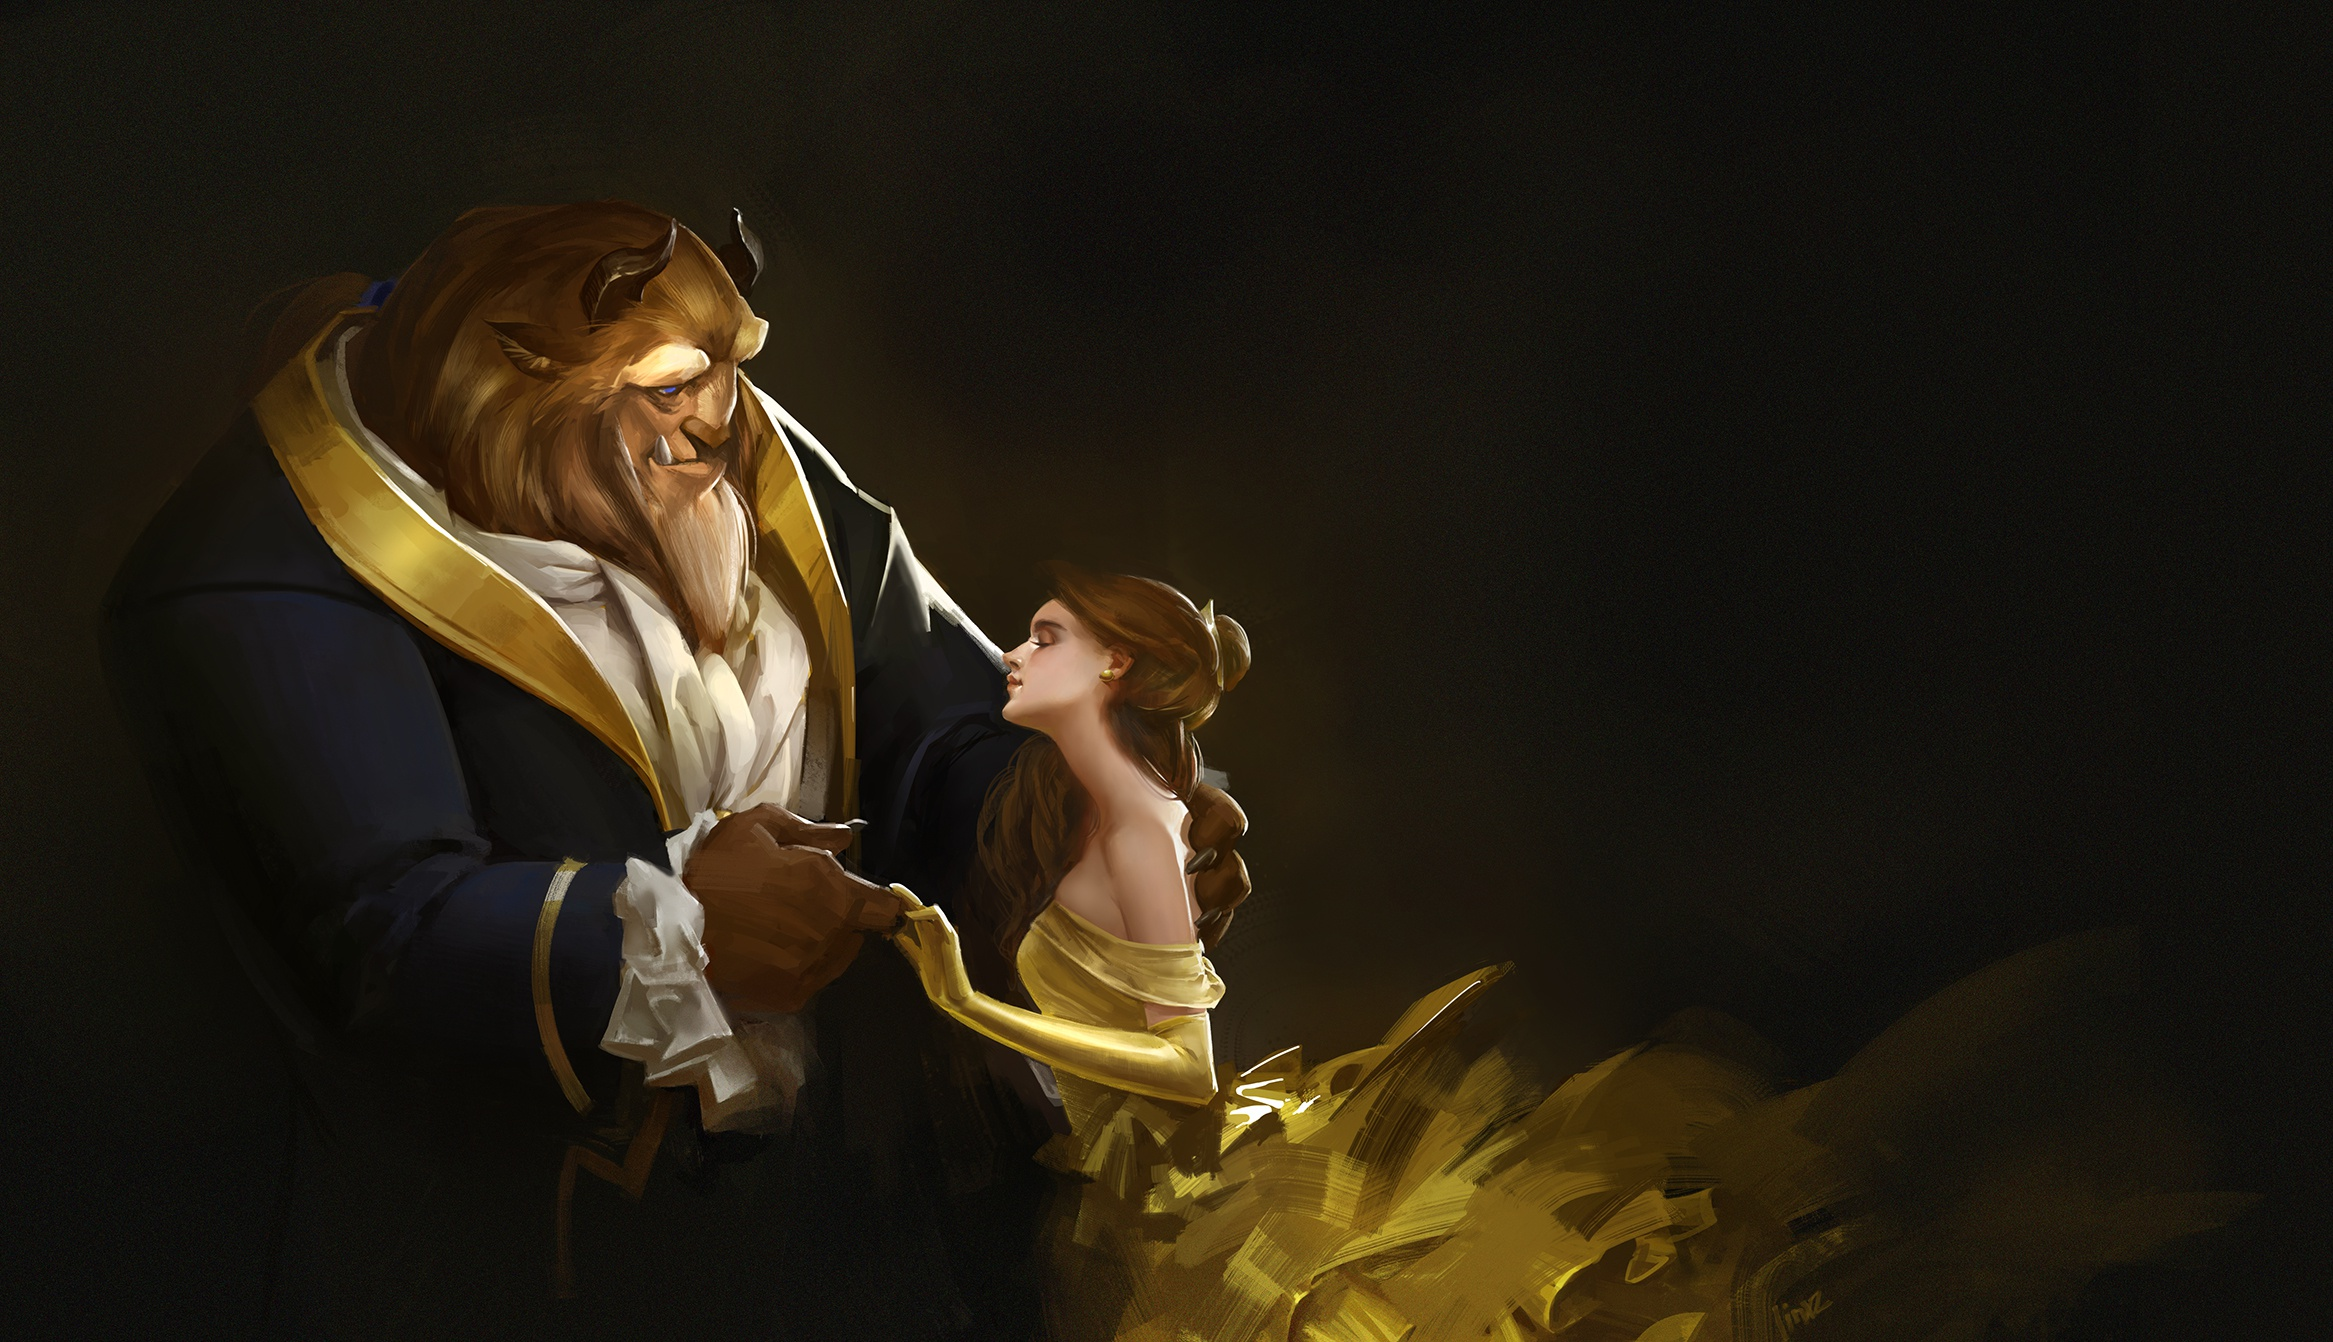 Beauty And The Beast Artwork Hd Movies 4k Wallpapers Images